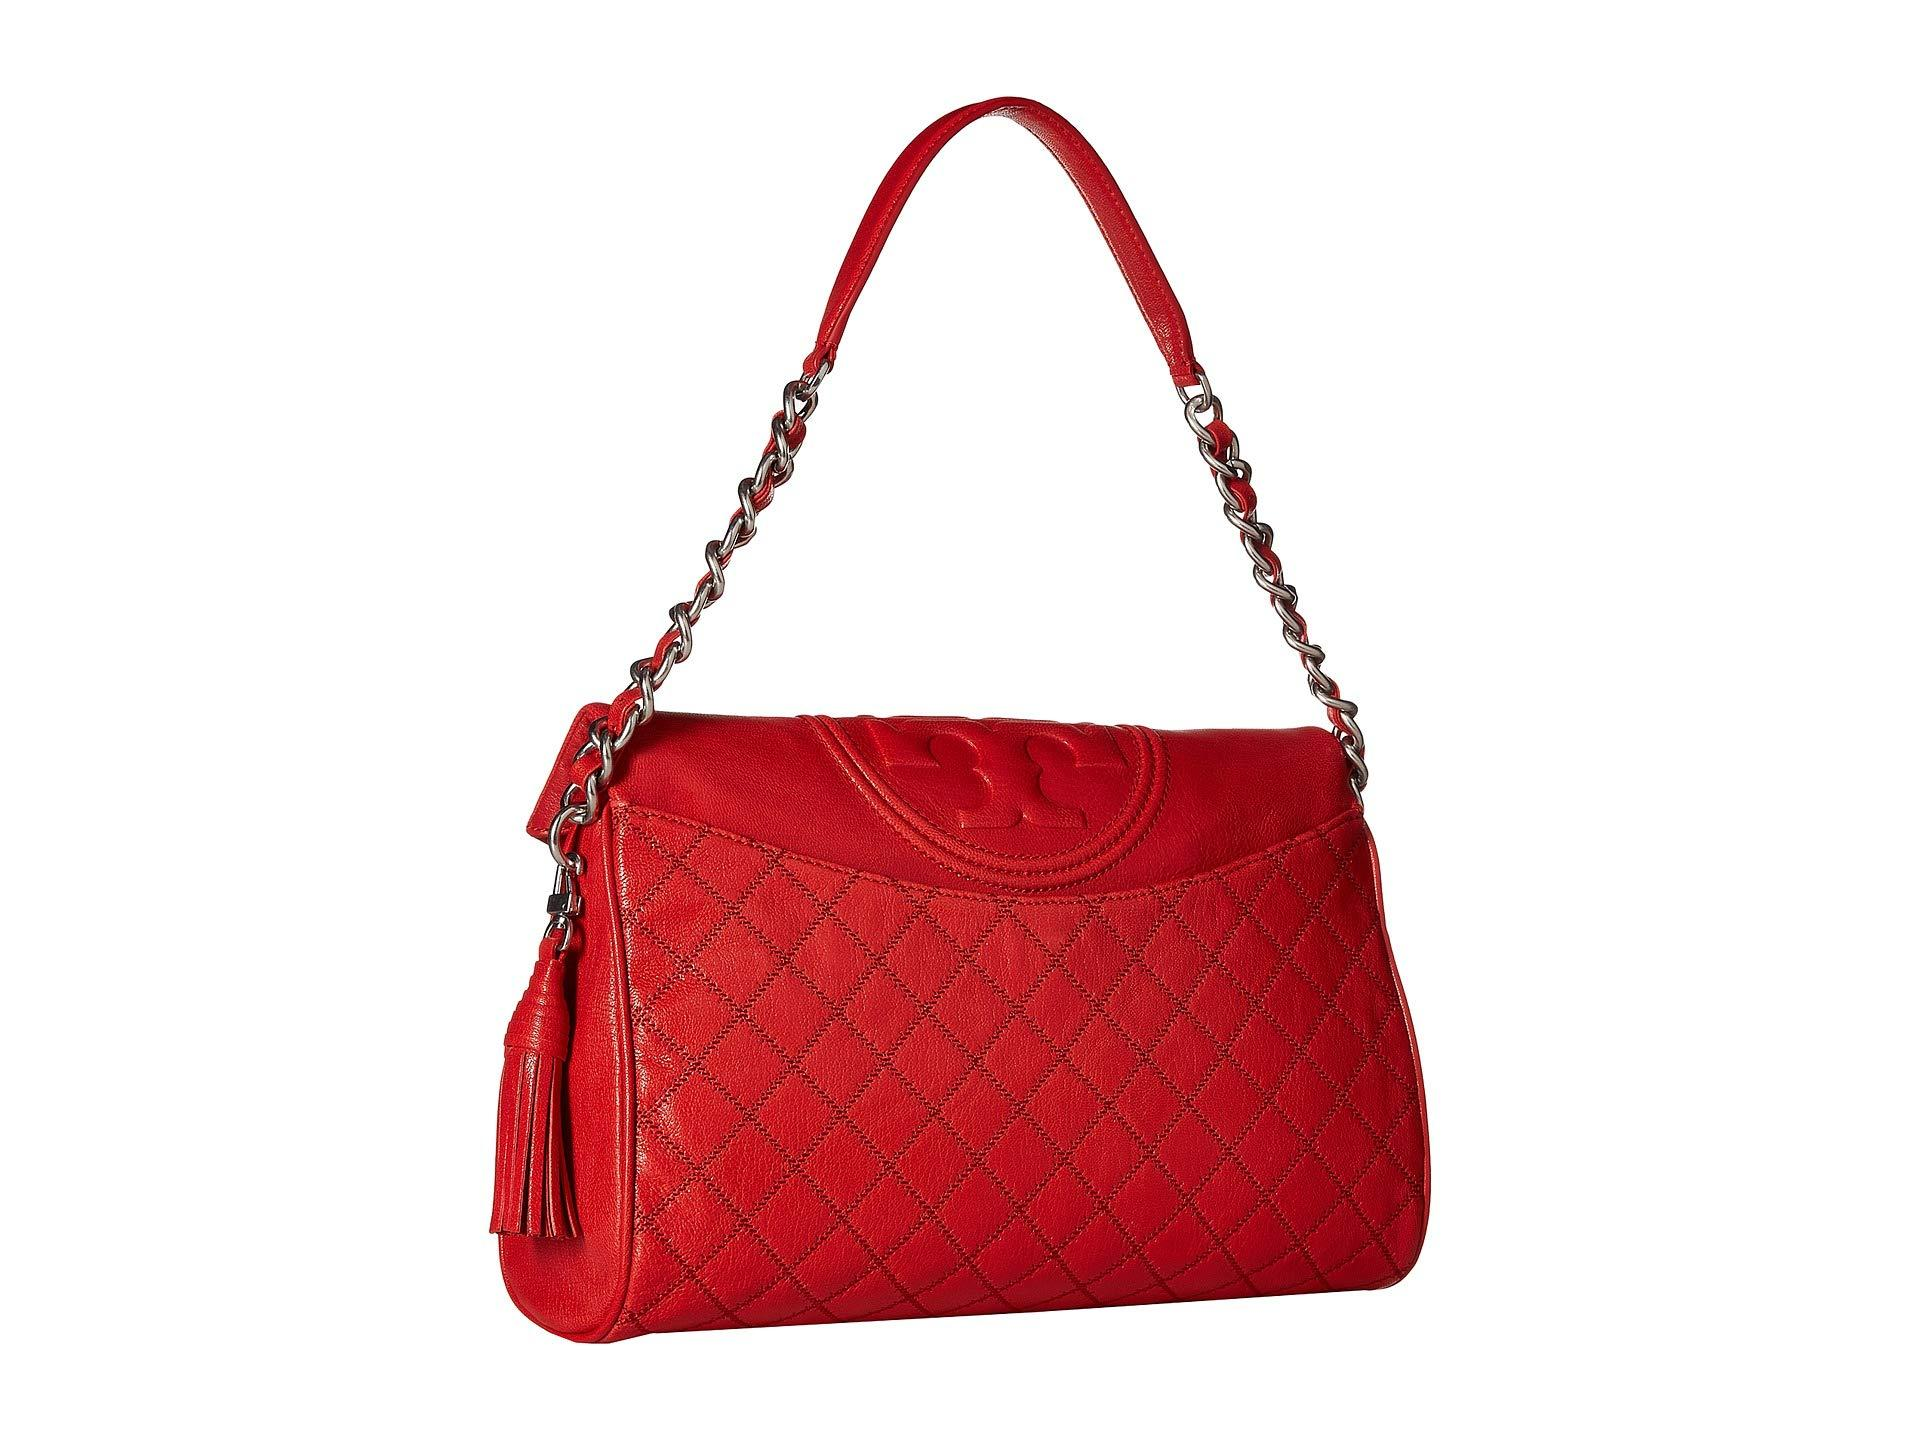 7ad31b1e776 Tory Burch - Red Fleming Distressed Leather Fold-over Hobo - Lyst. View  fullscreen